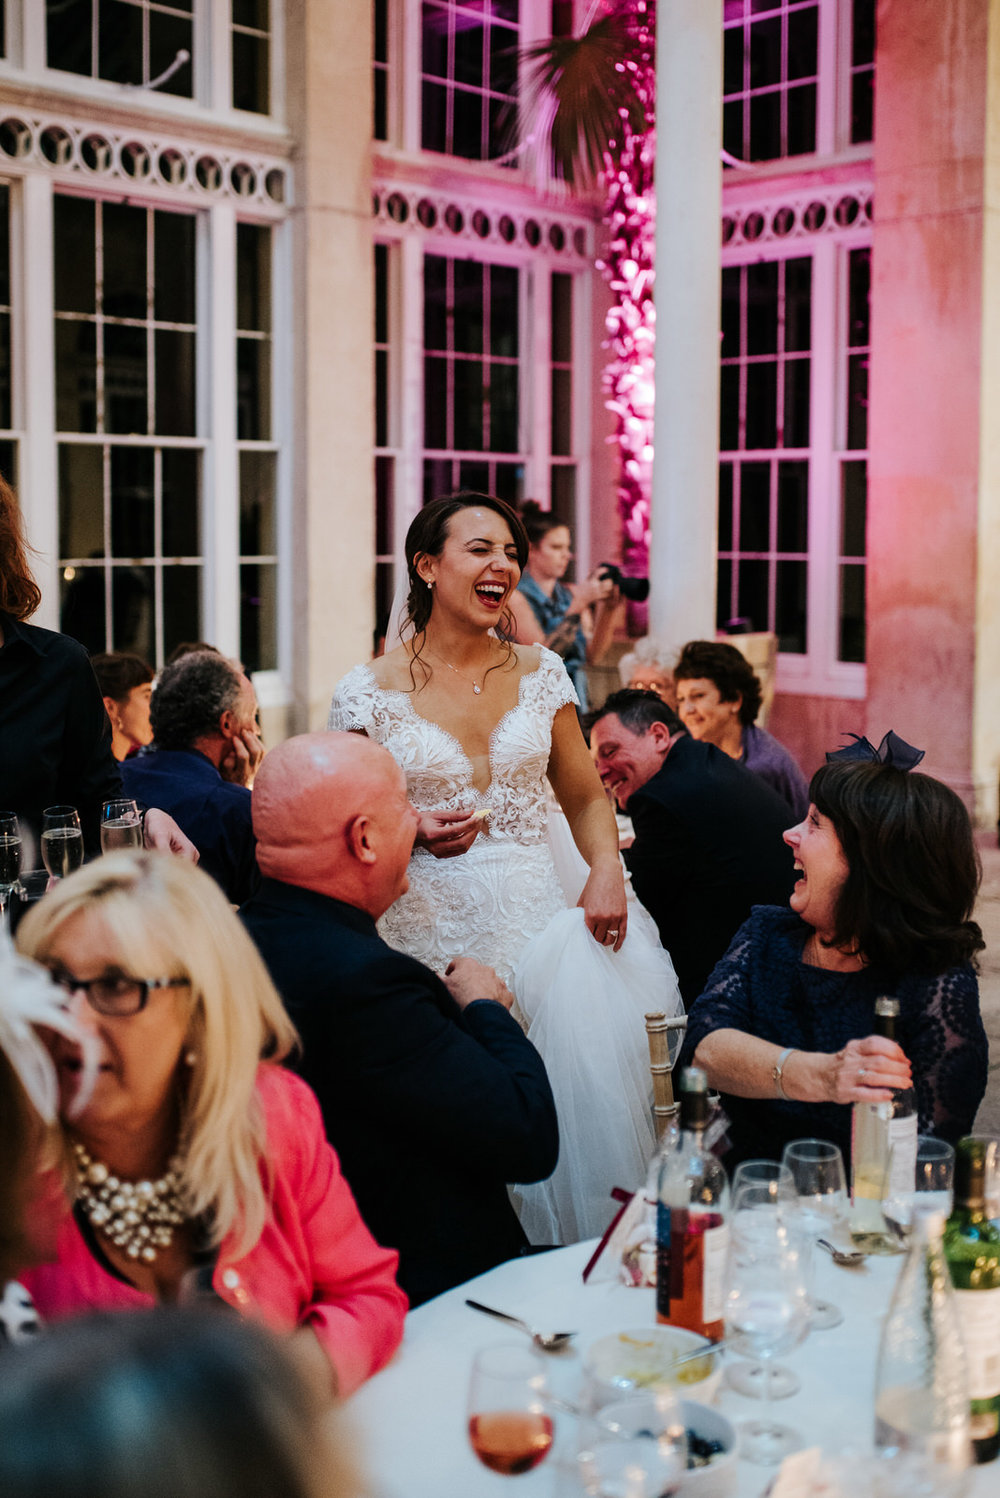 Bride can't contain laughter as she goes around tables saying hello to her guests